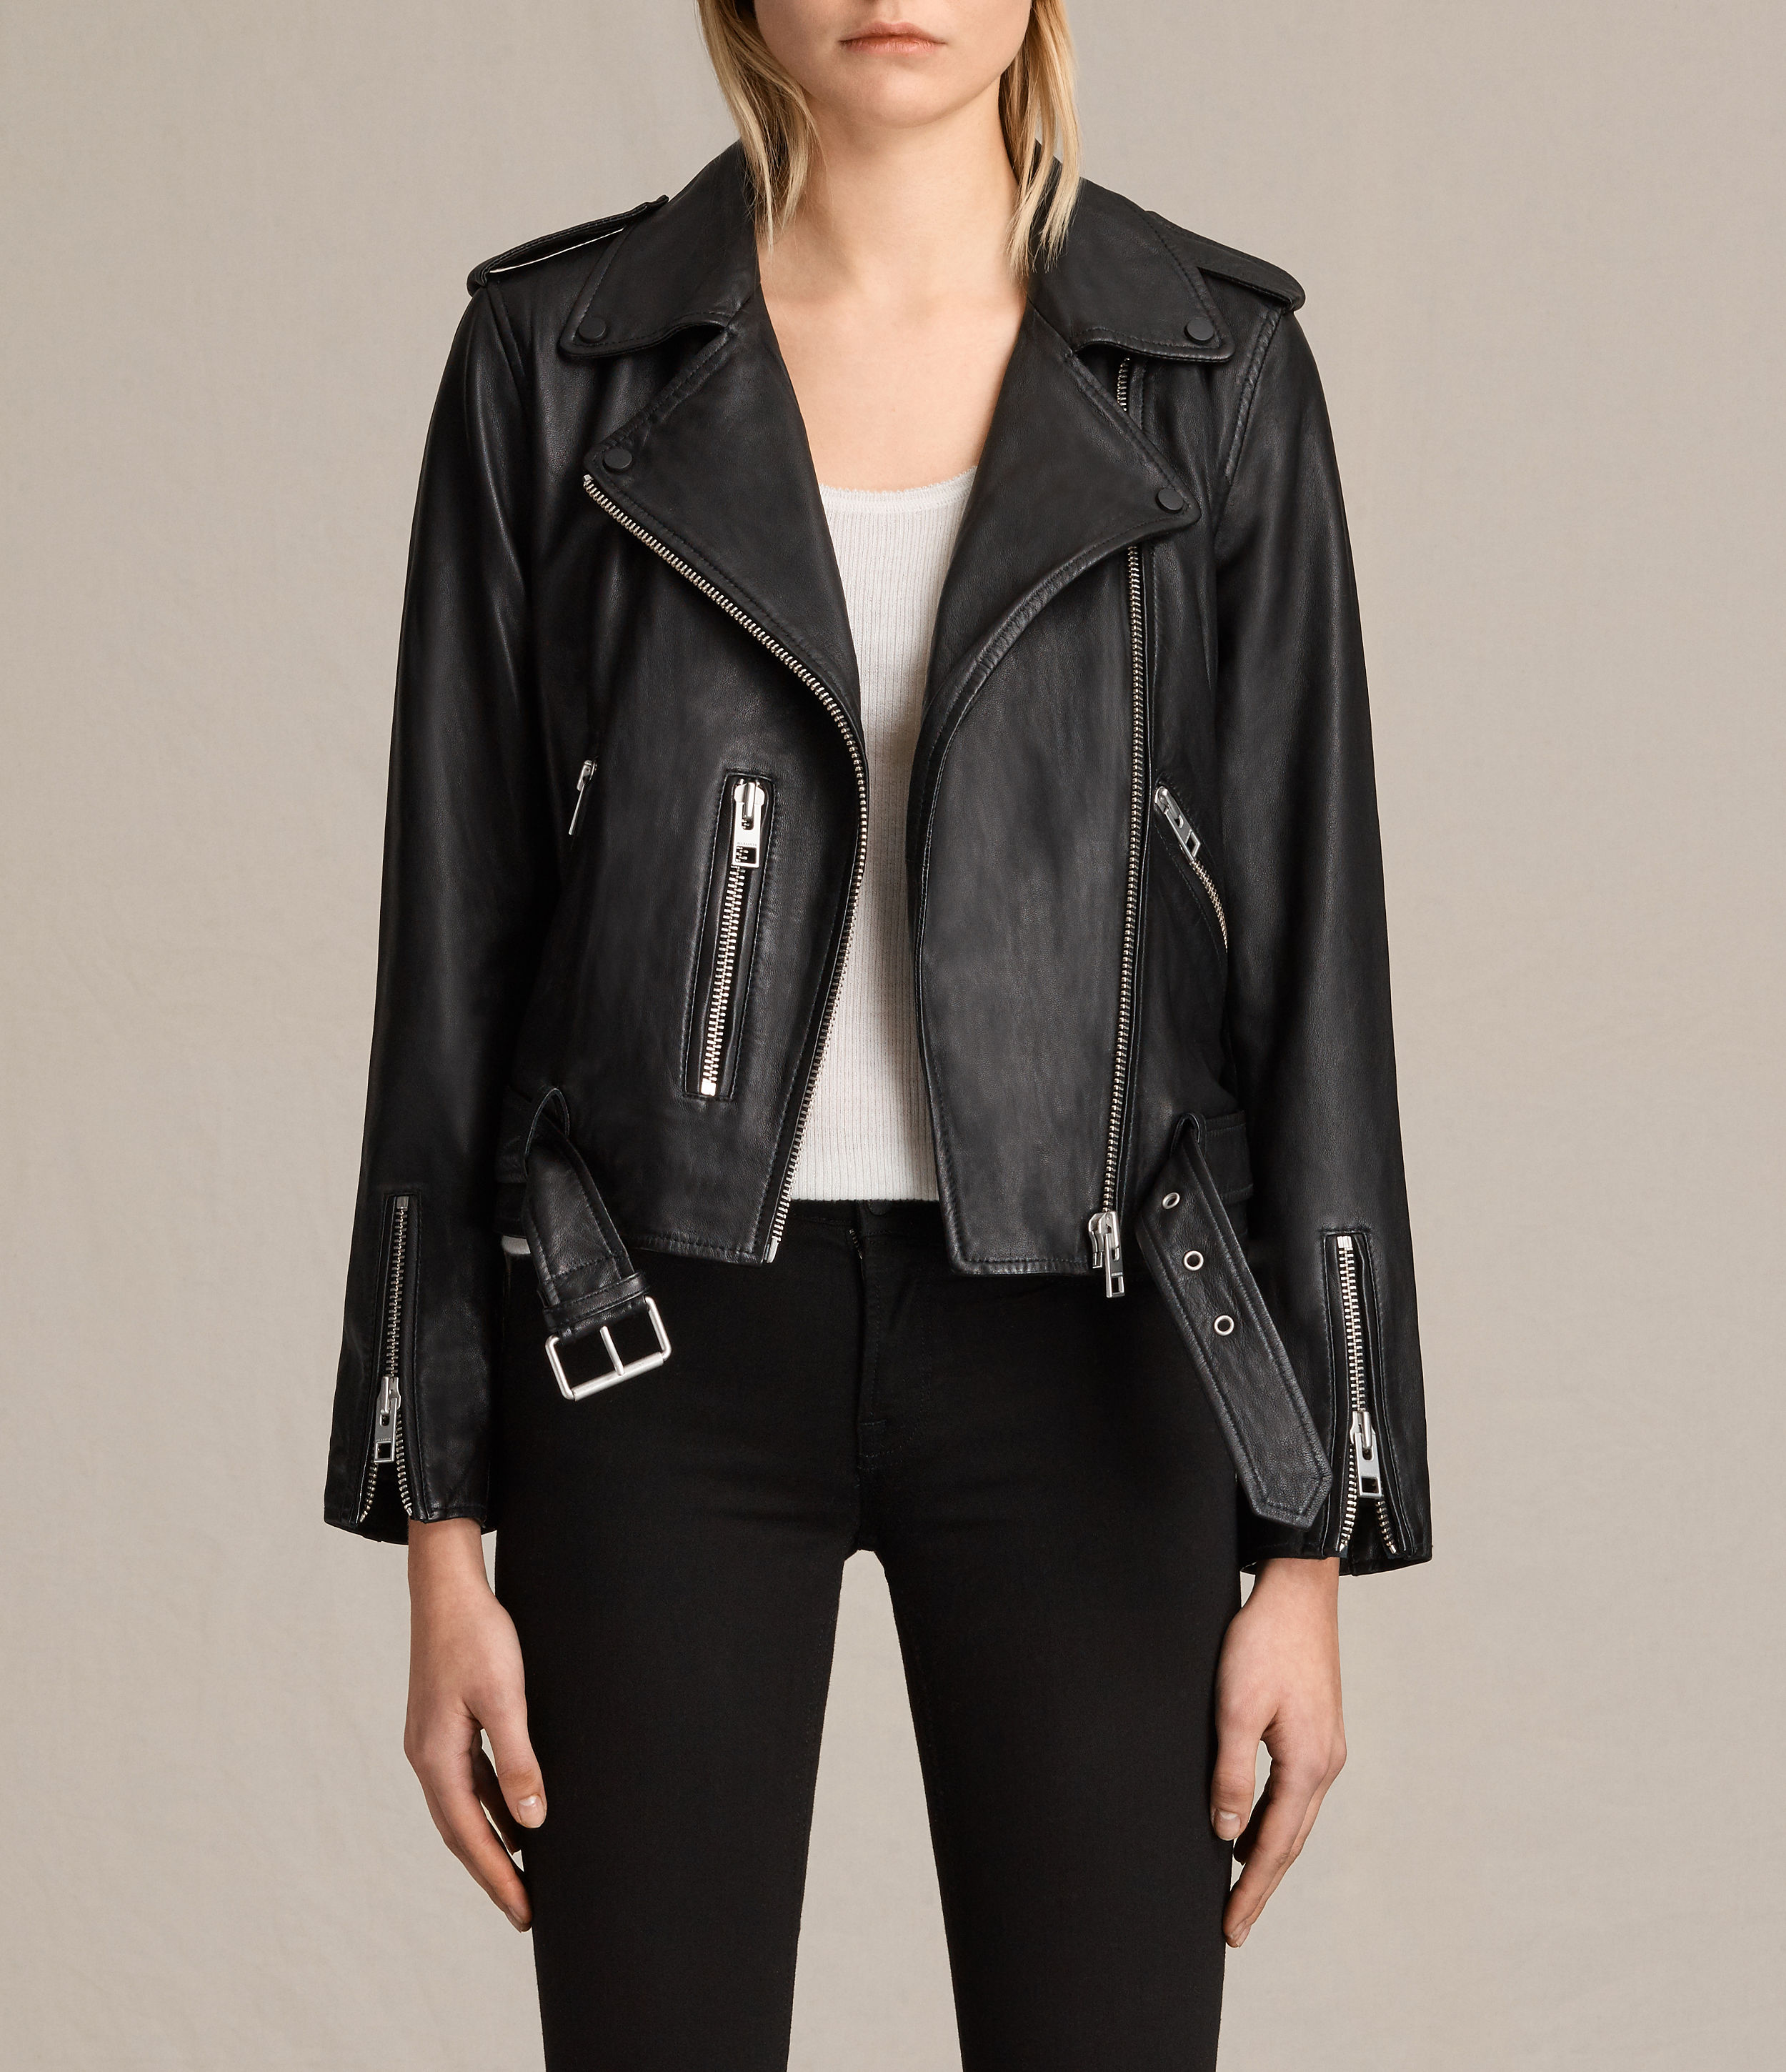 all saints balfern leather jacket